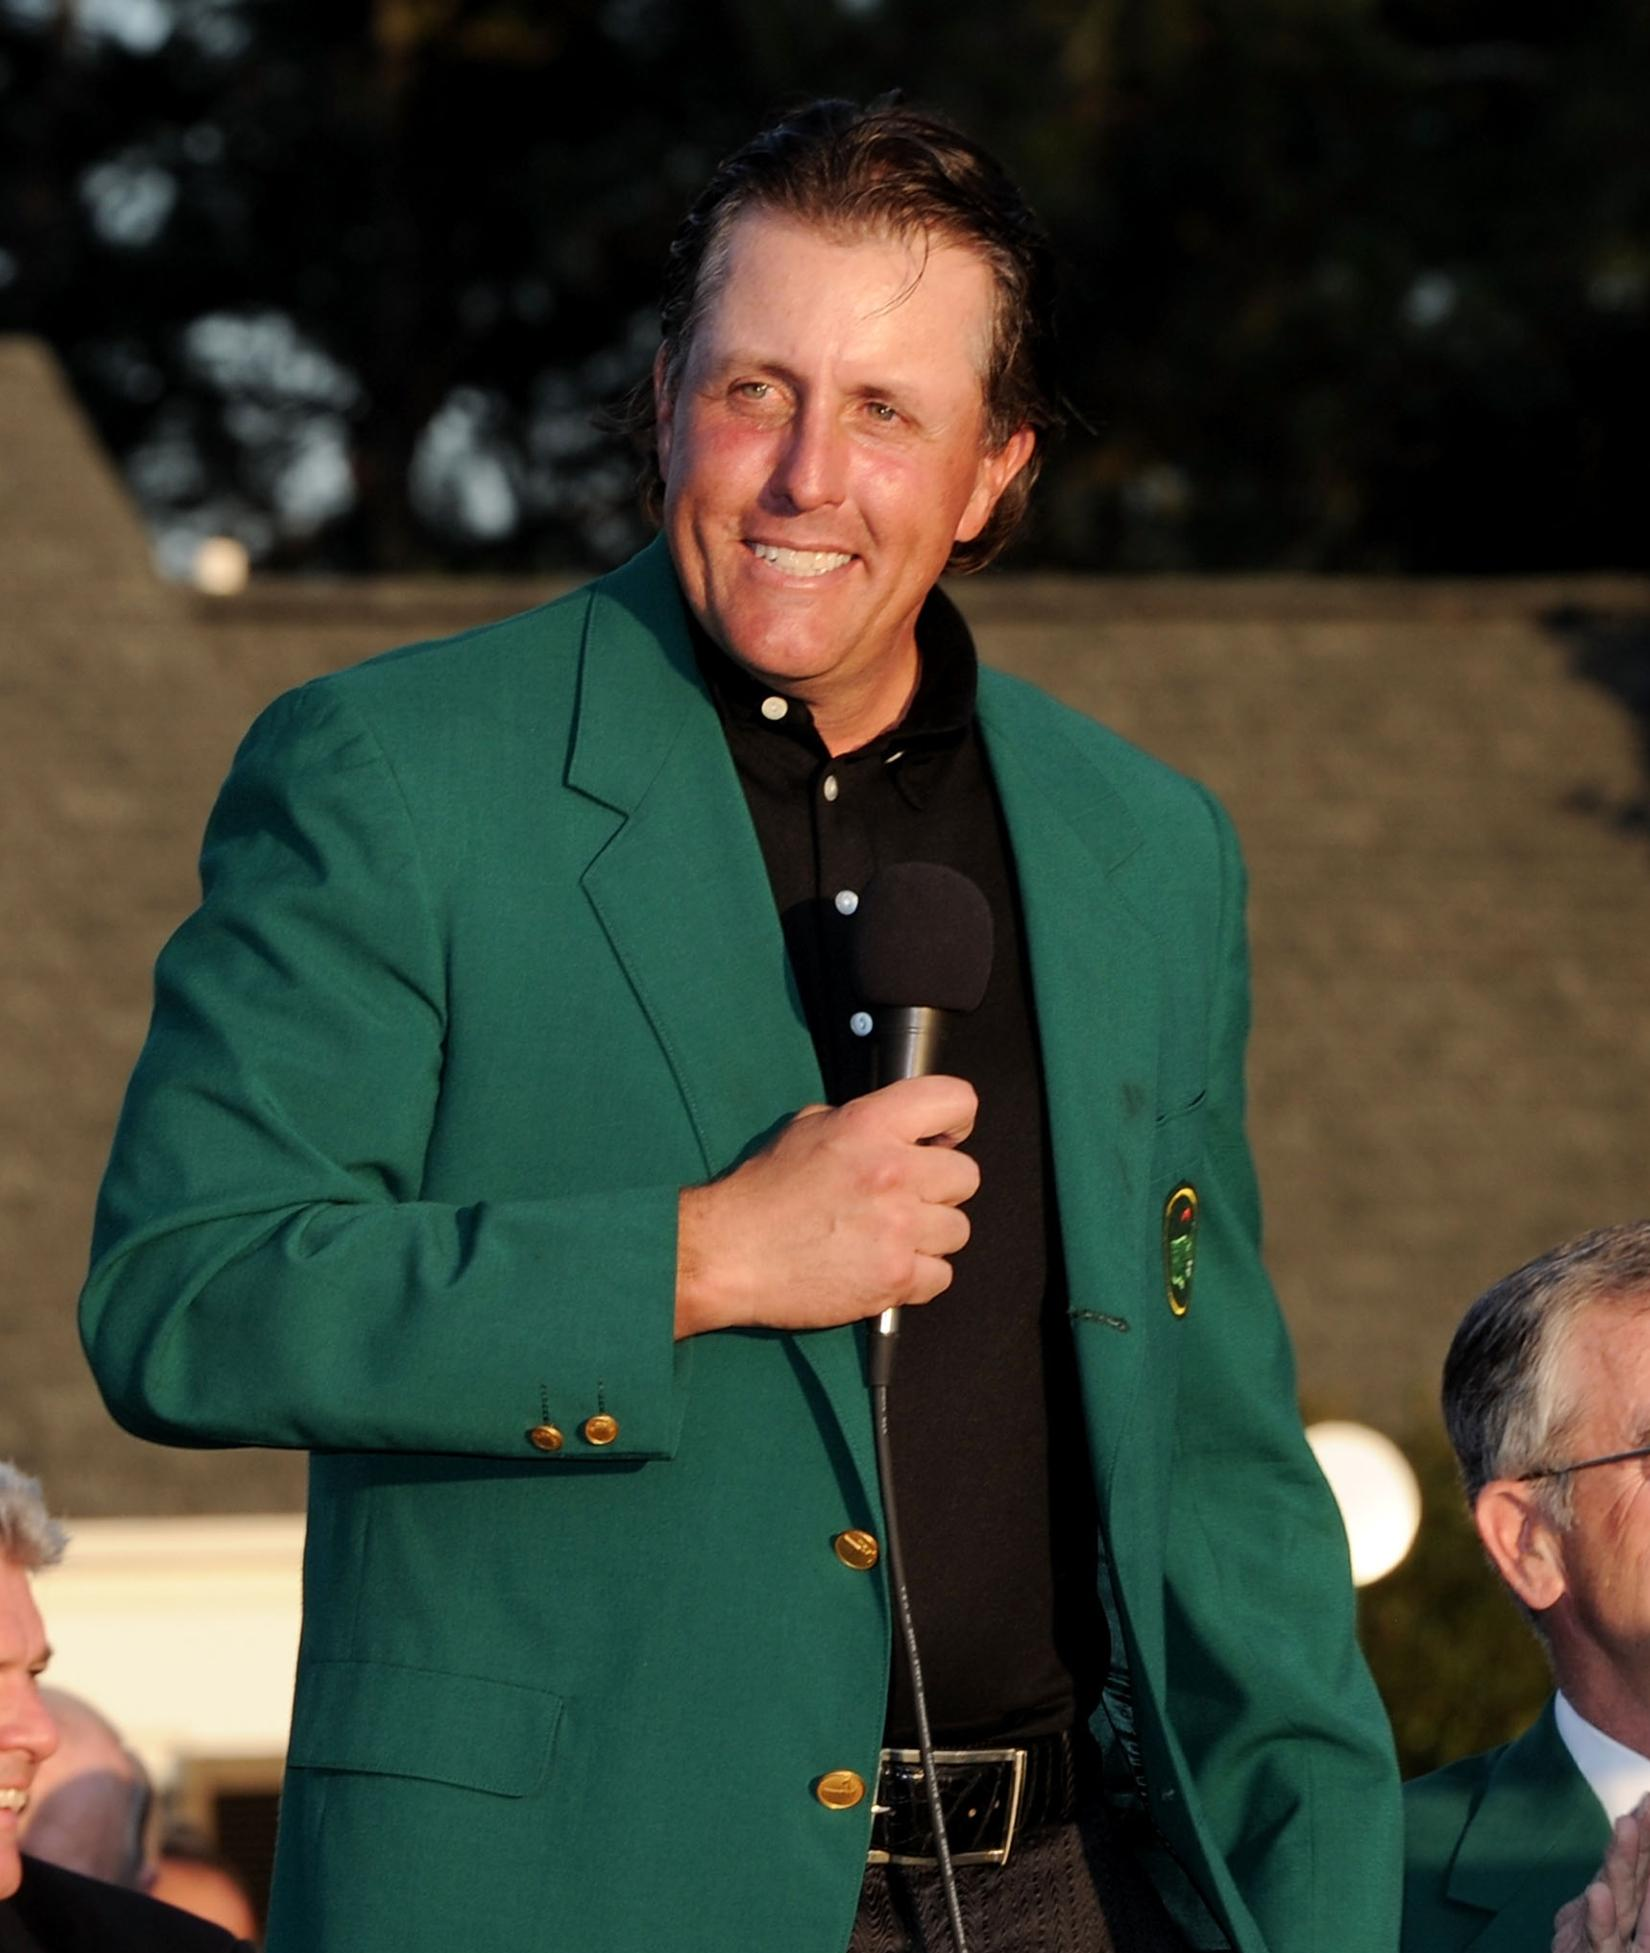 Phil Alfred Mickelson